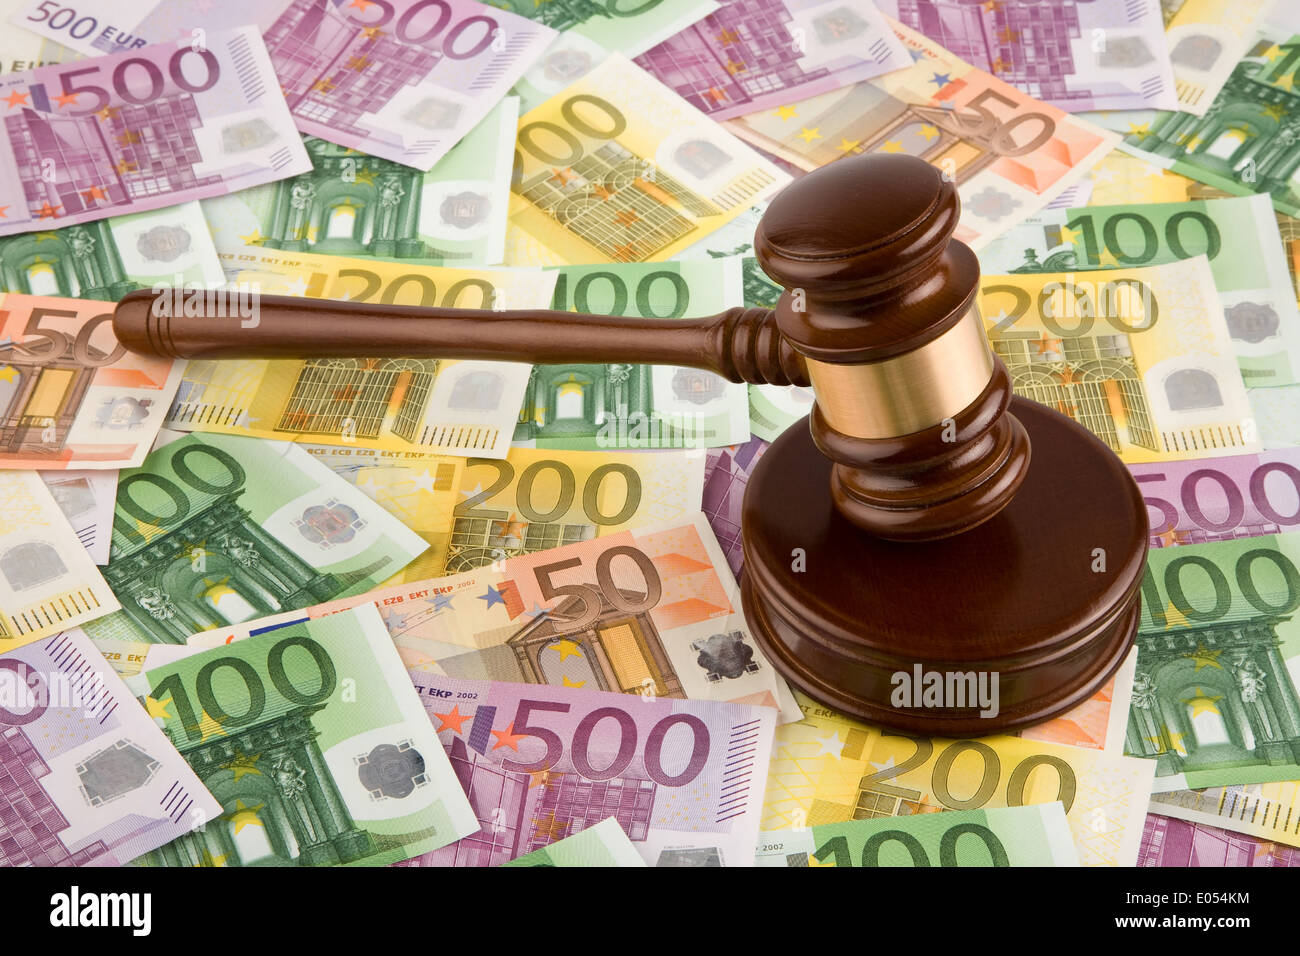 .& *,-. as district court in and accused accusation accuse lawyers lawyer lawyers on enlightened enlightened clarification clari - Stock Image